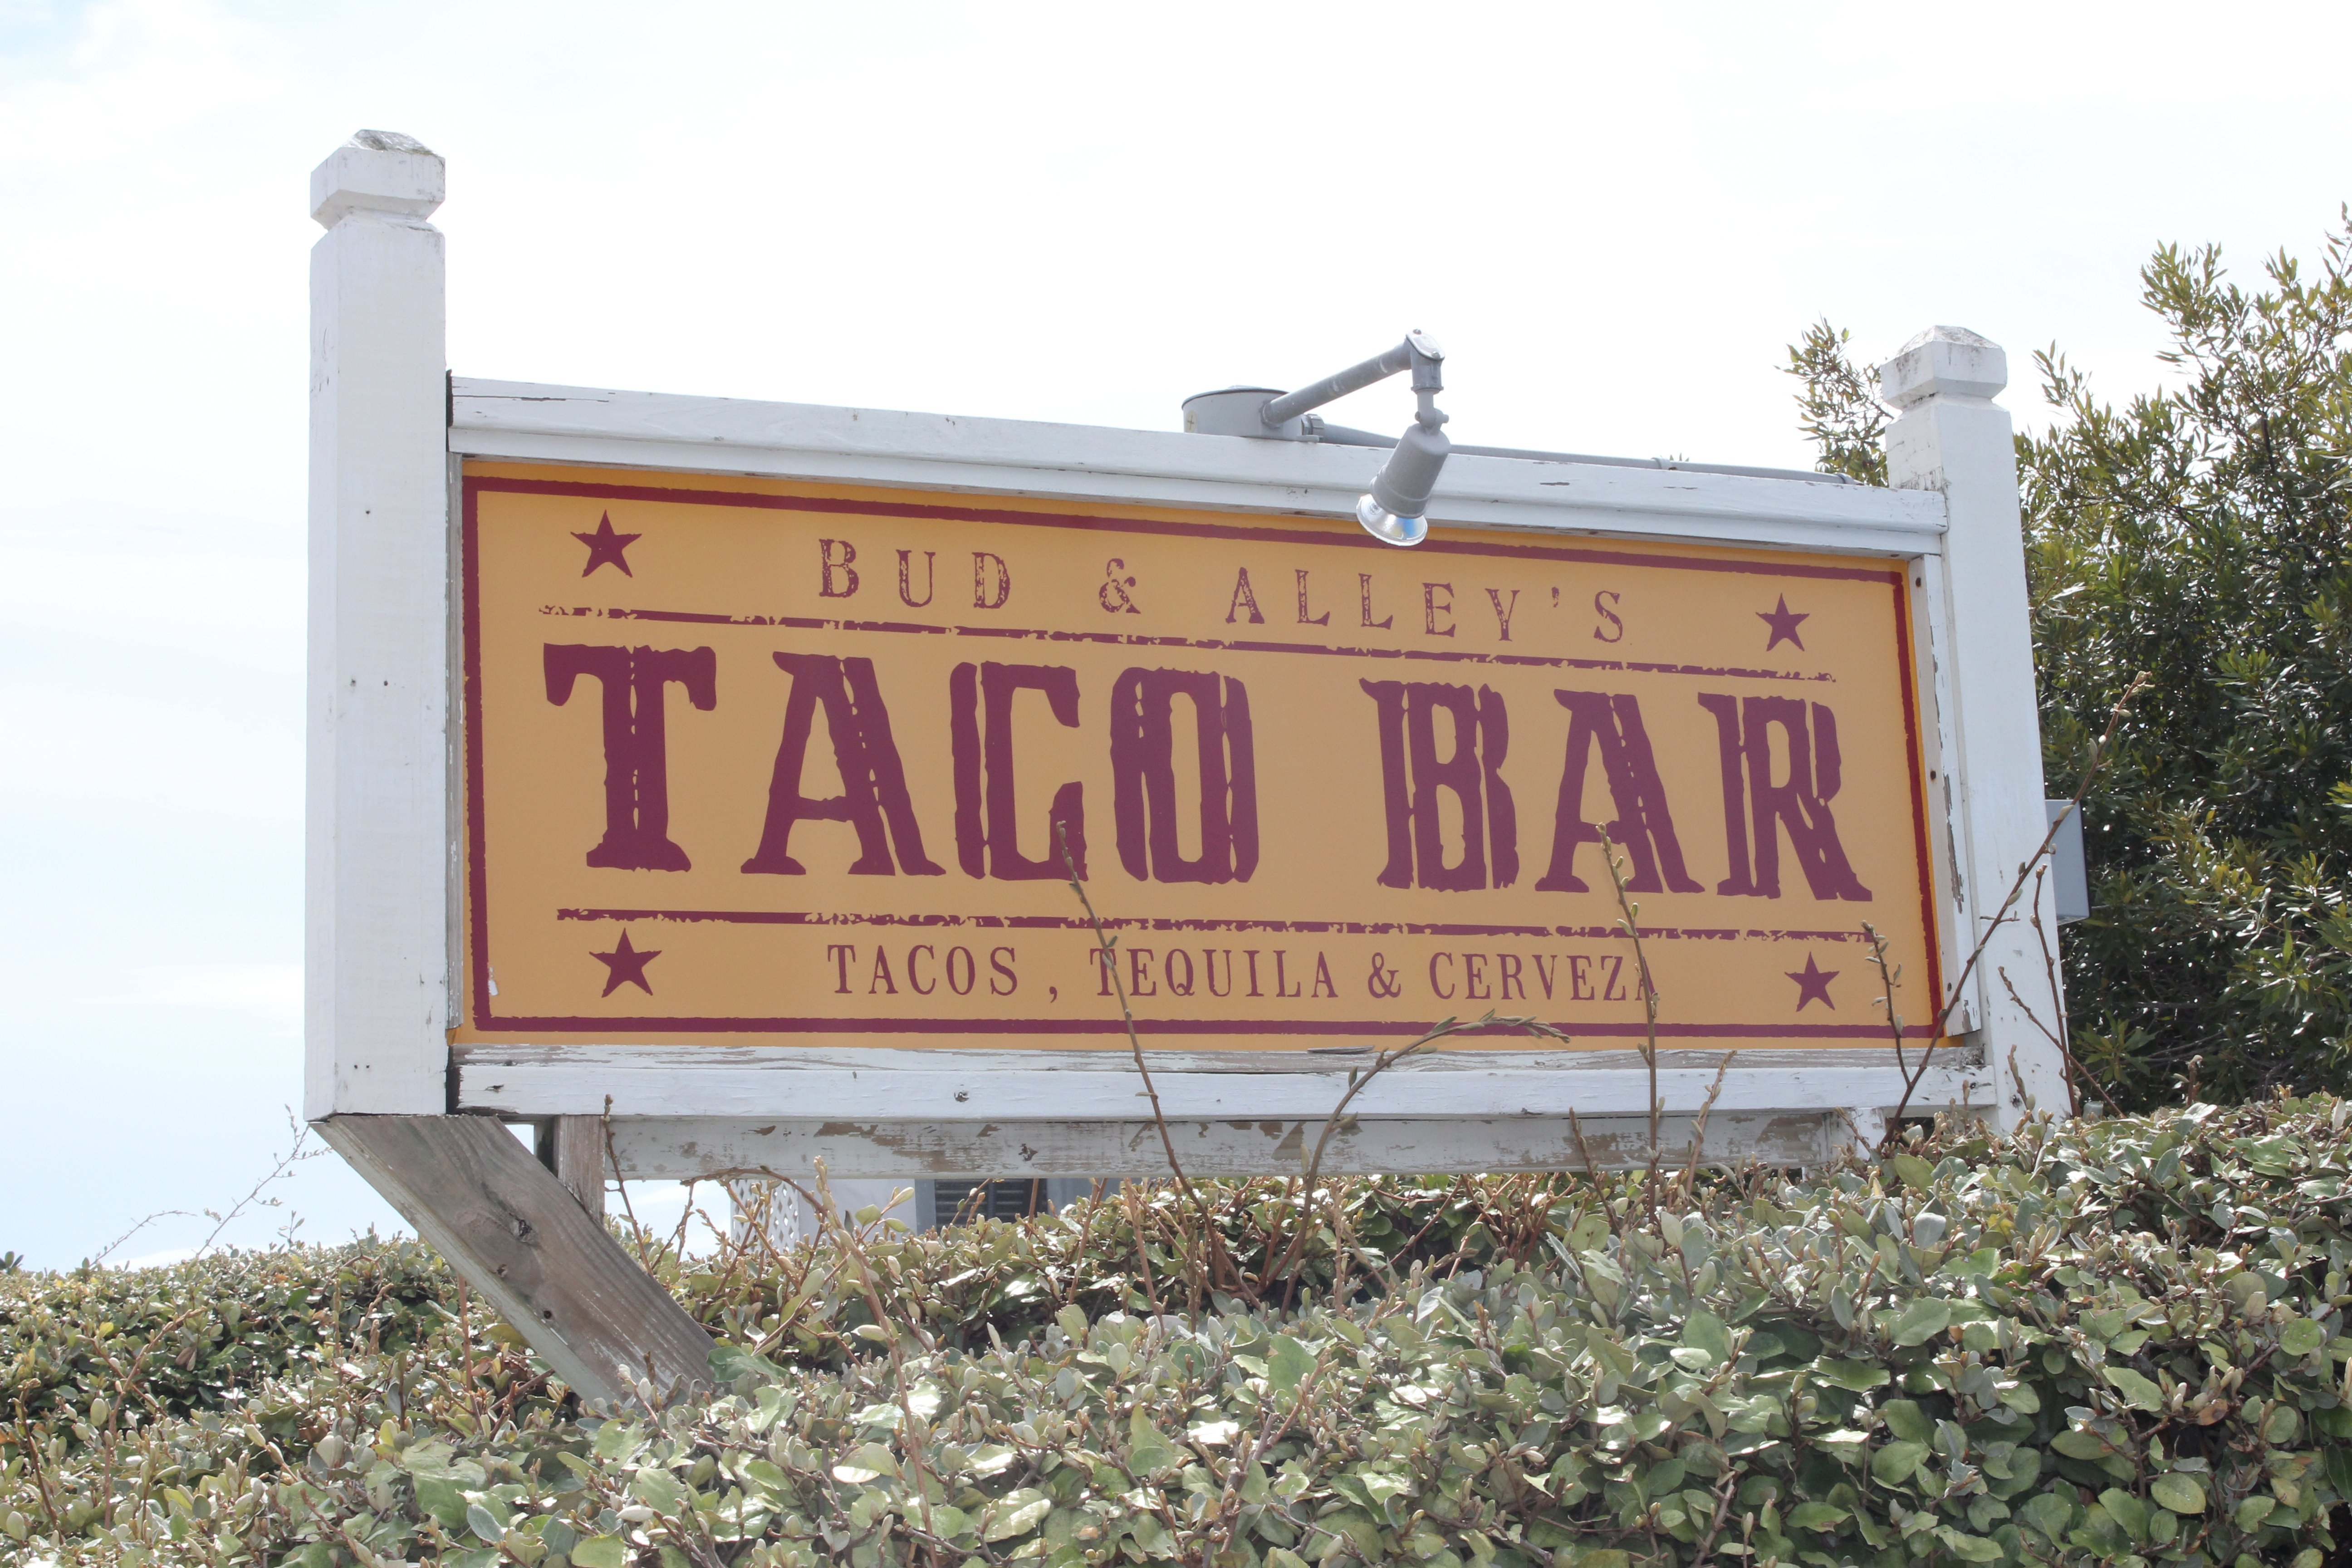 Seaside Bud Alleys Taco Bar 30a food and wine